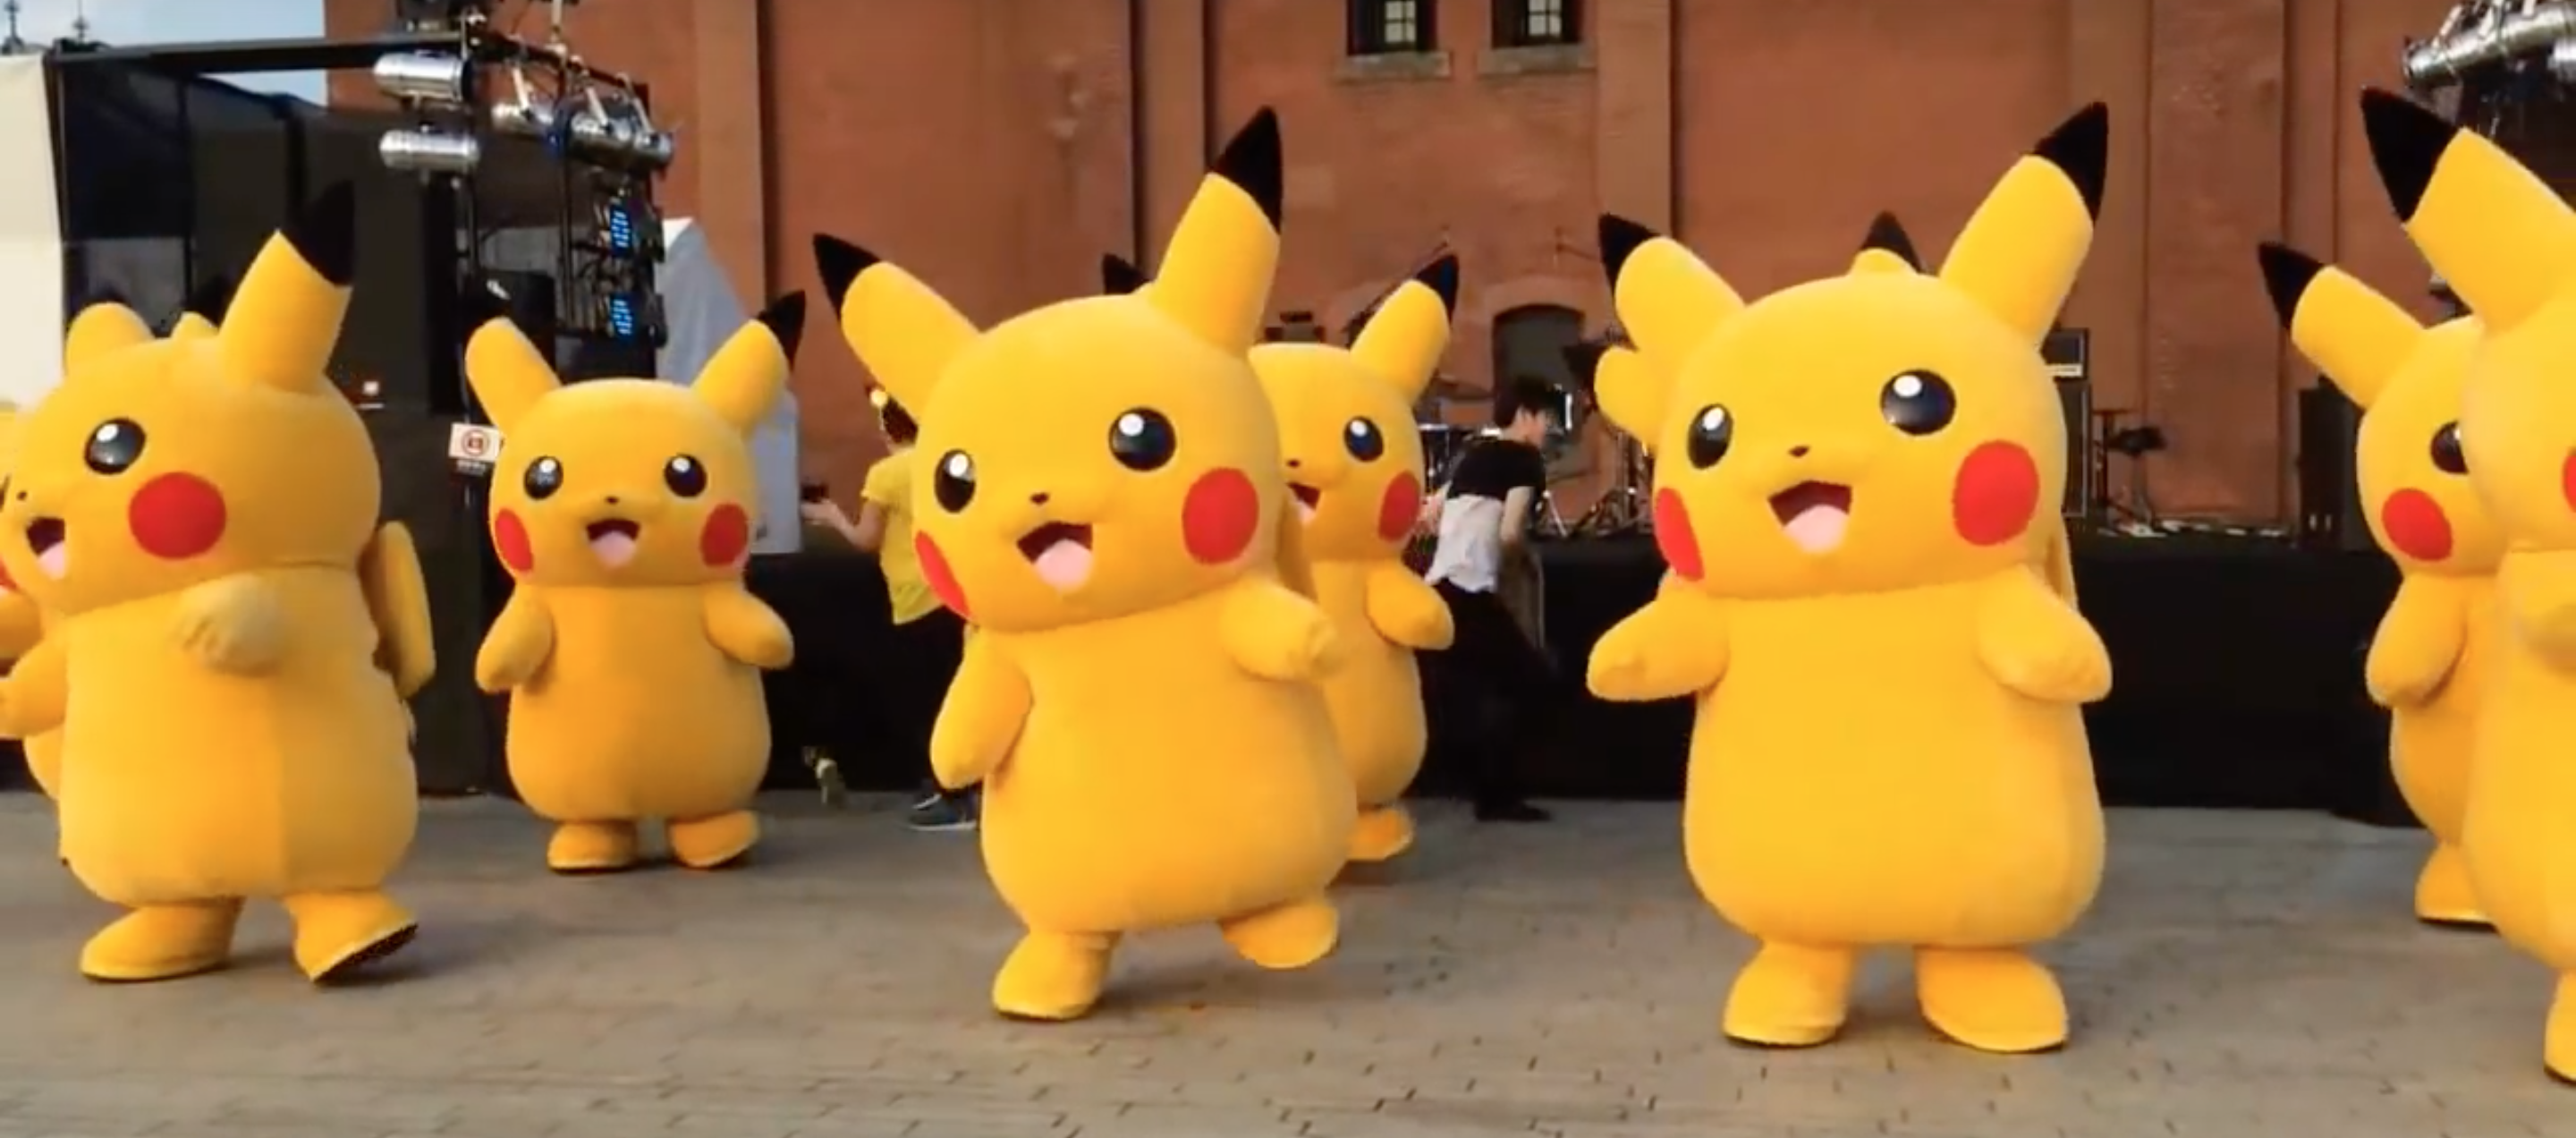 Together Energy Reviews >> Look, it's a bunch of Pikachu dancing to Beyoncé's ...